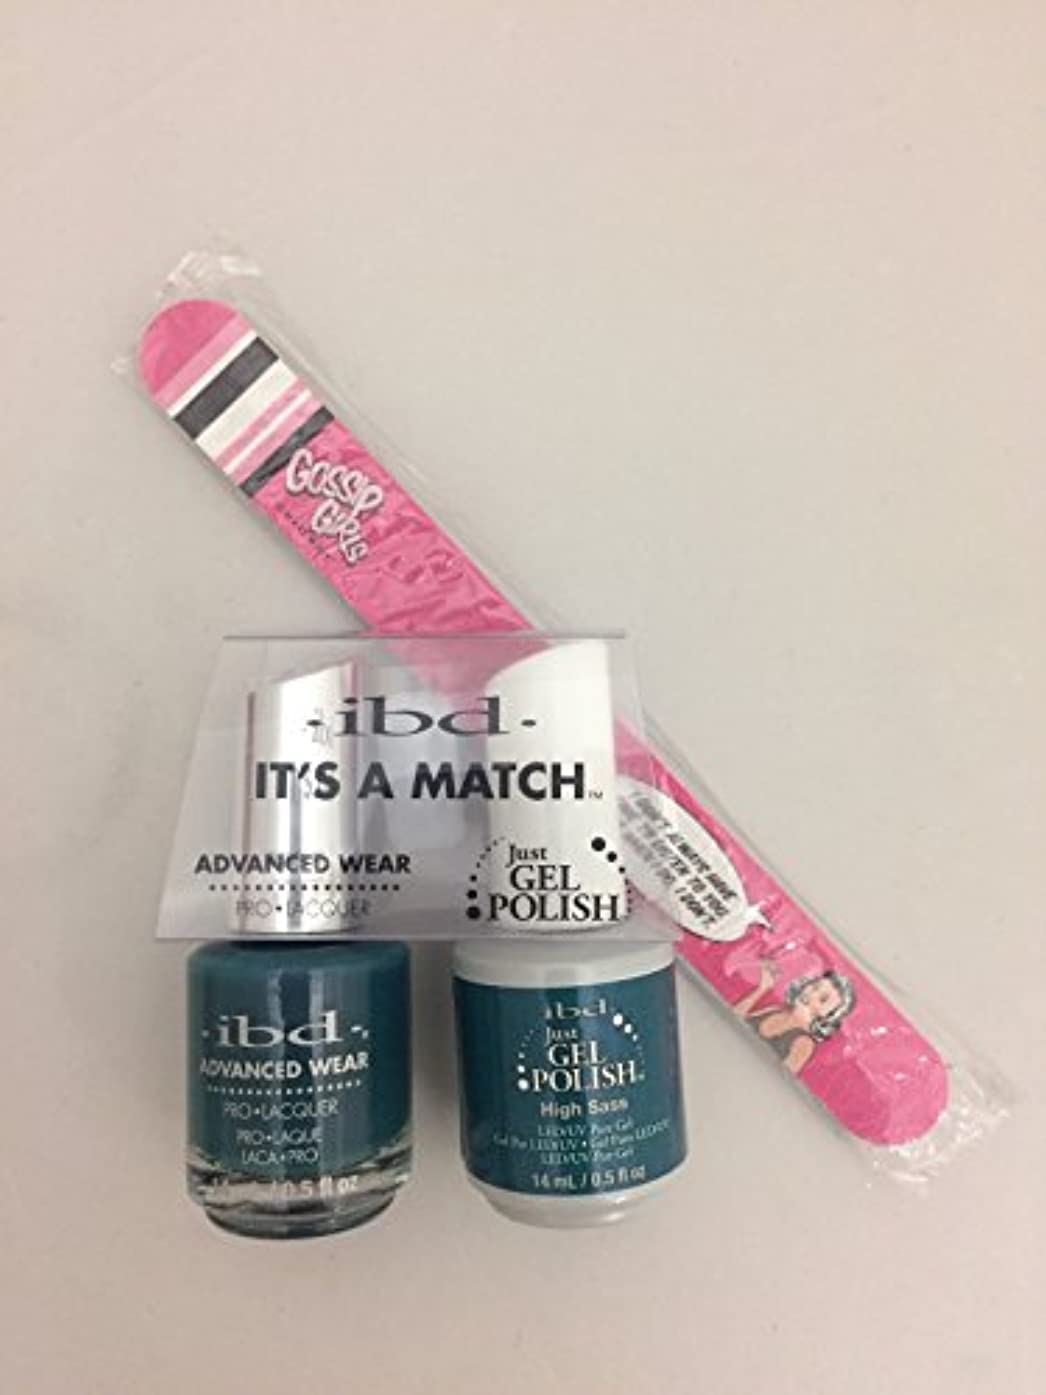 悔い改め中古抹消ibd - It's A Match -Duo Pack- Imperial Affairs Collection - High Sass - 14 mL / 0.5 oz Each